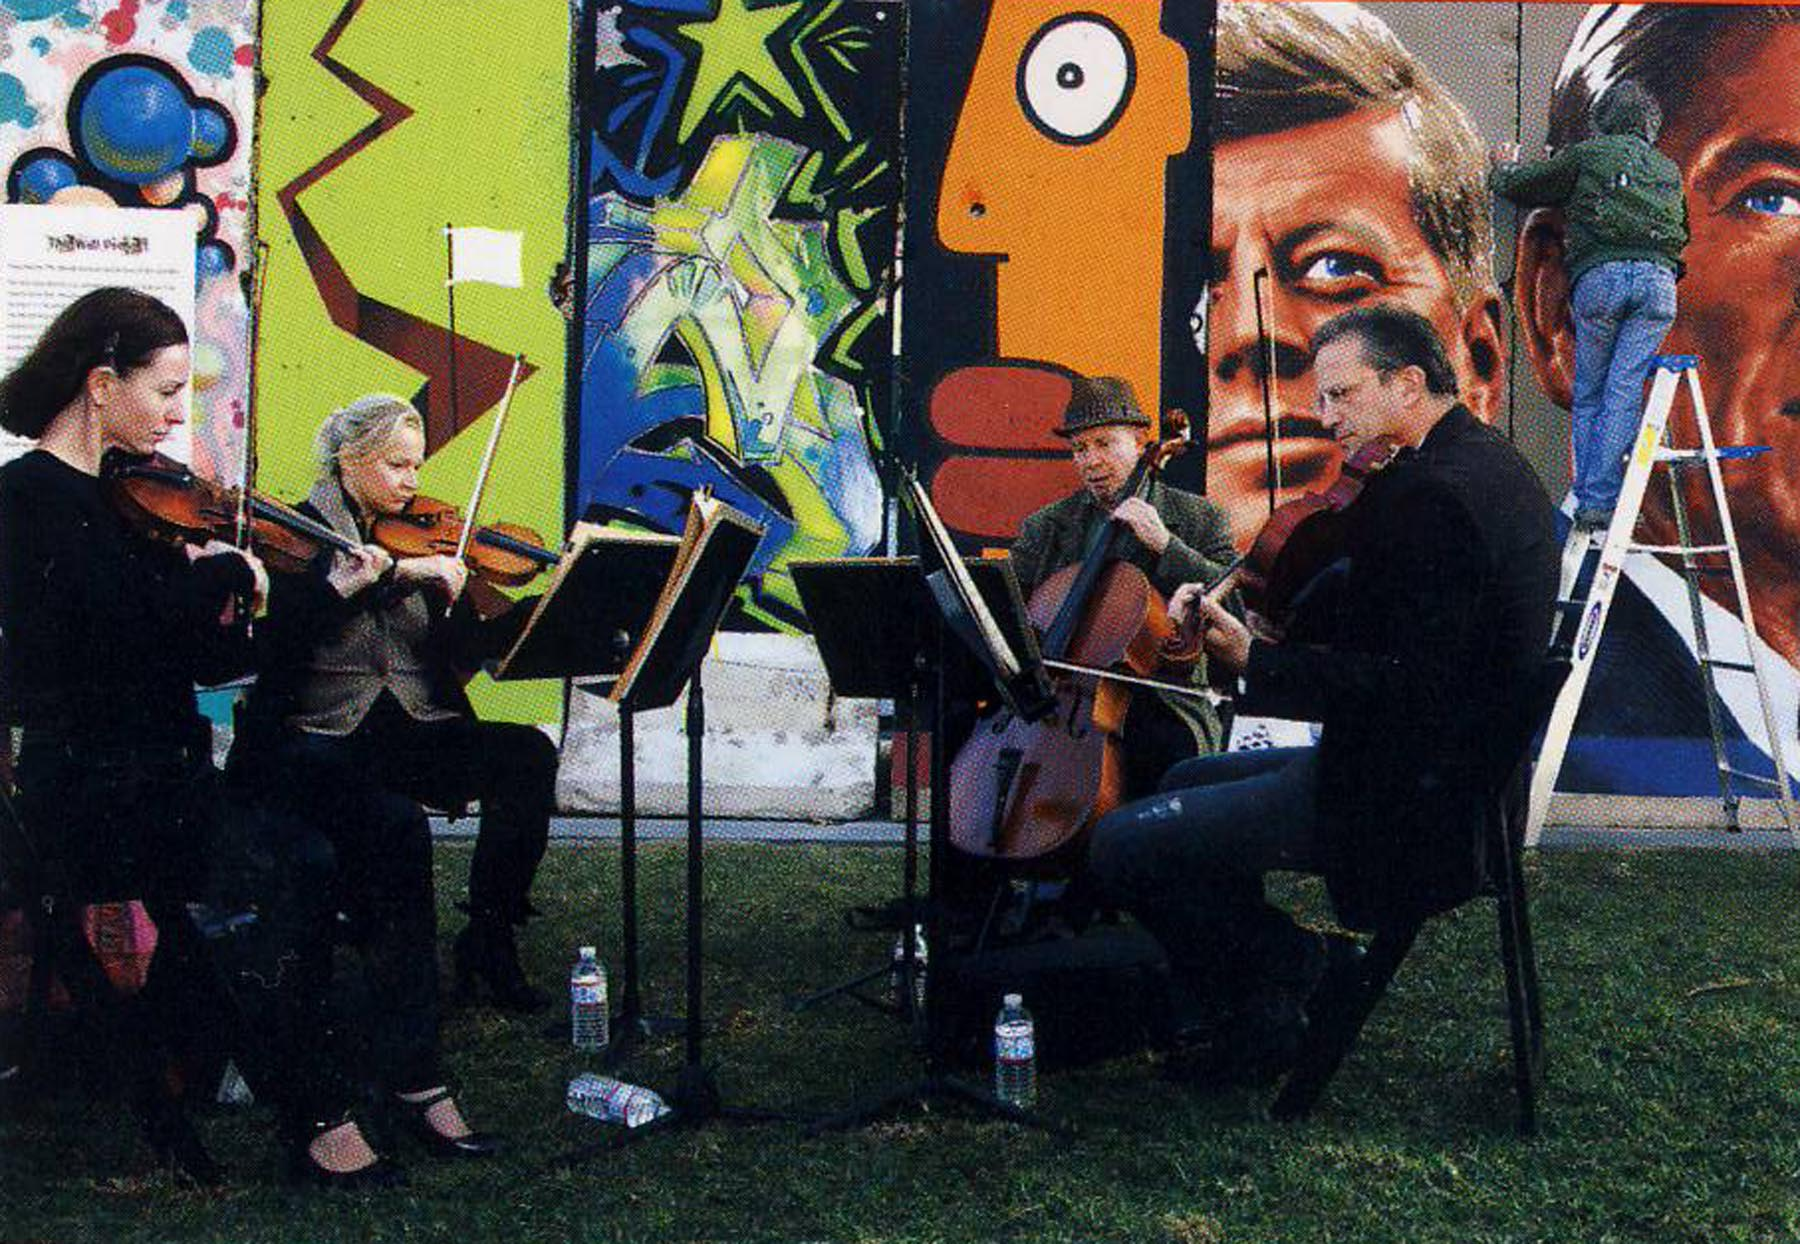 The Wende Quartet performs as Kent Twitchell paints the Wall